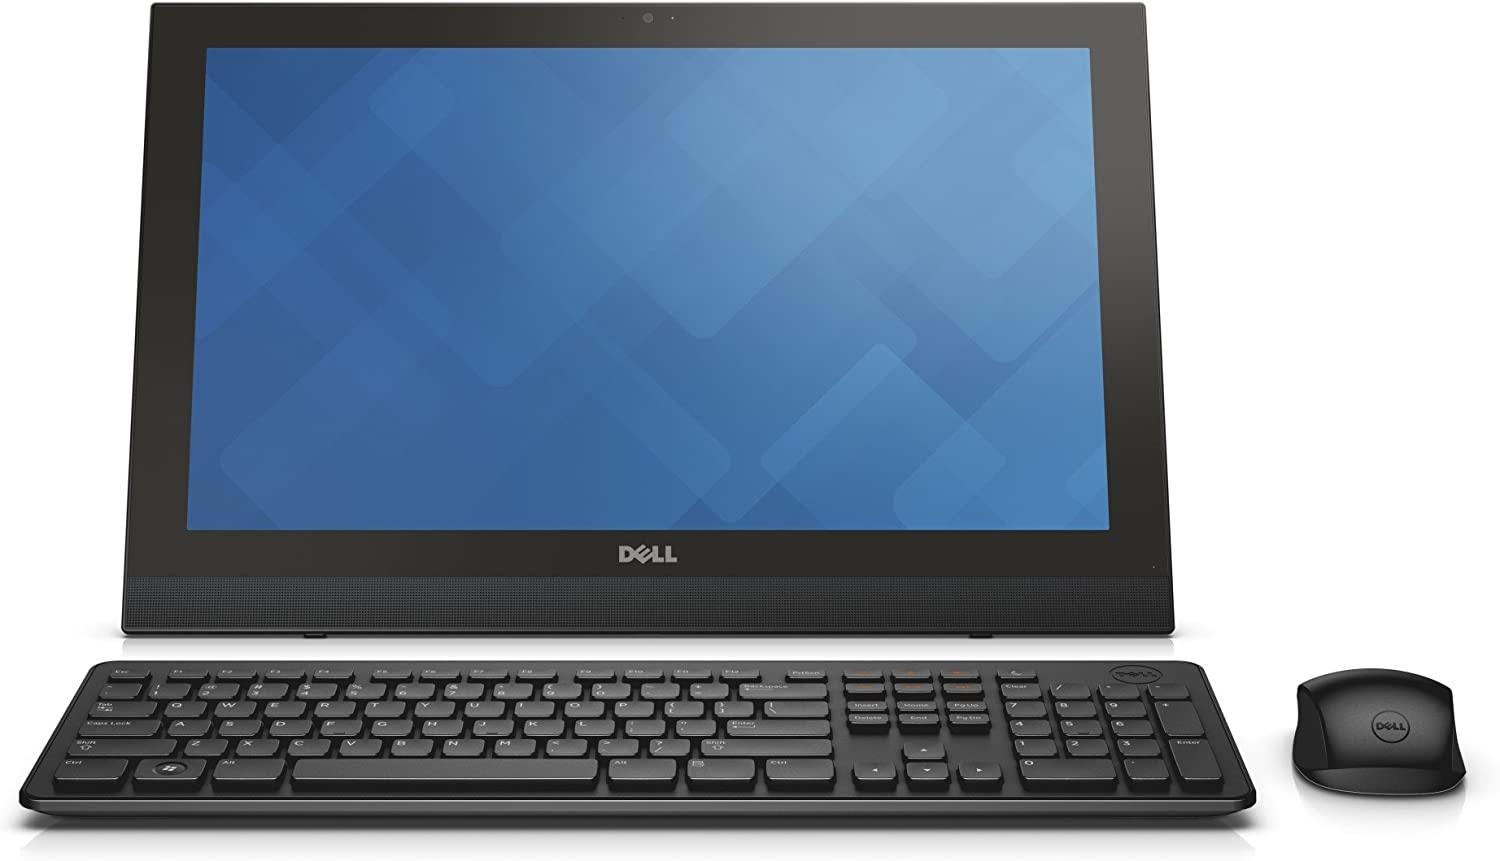 Dell Inspiron i3043-1250BLK 19.5-Inch All-in-One Desktop (Discontinued by Manufacturer)